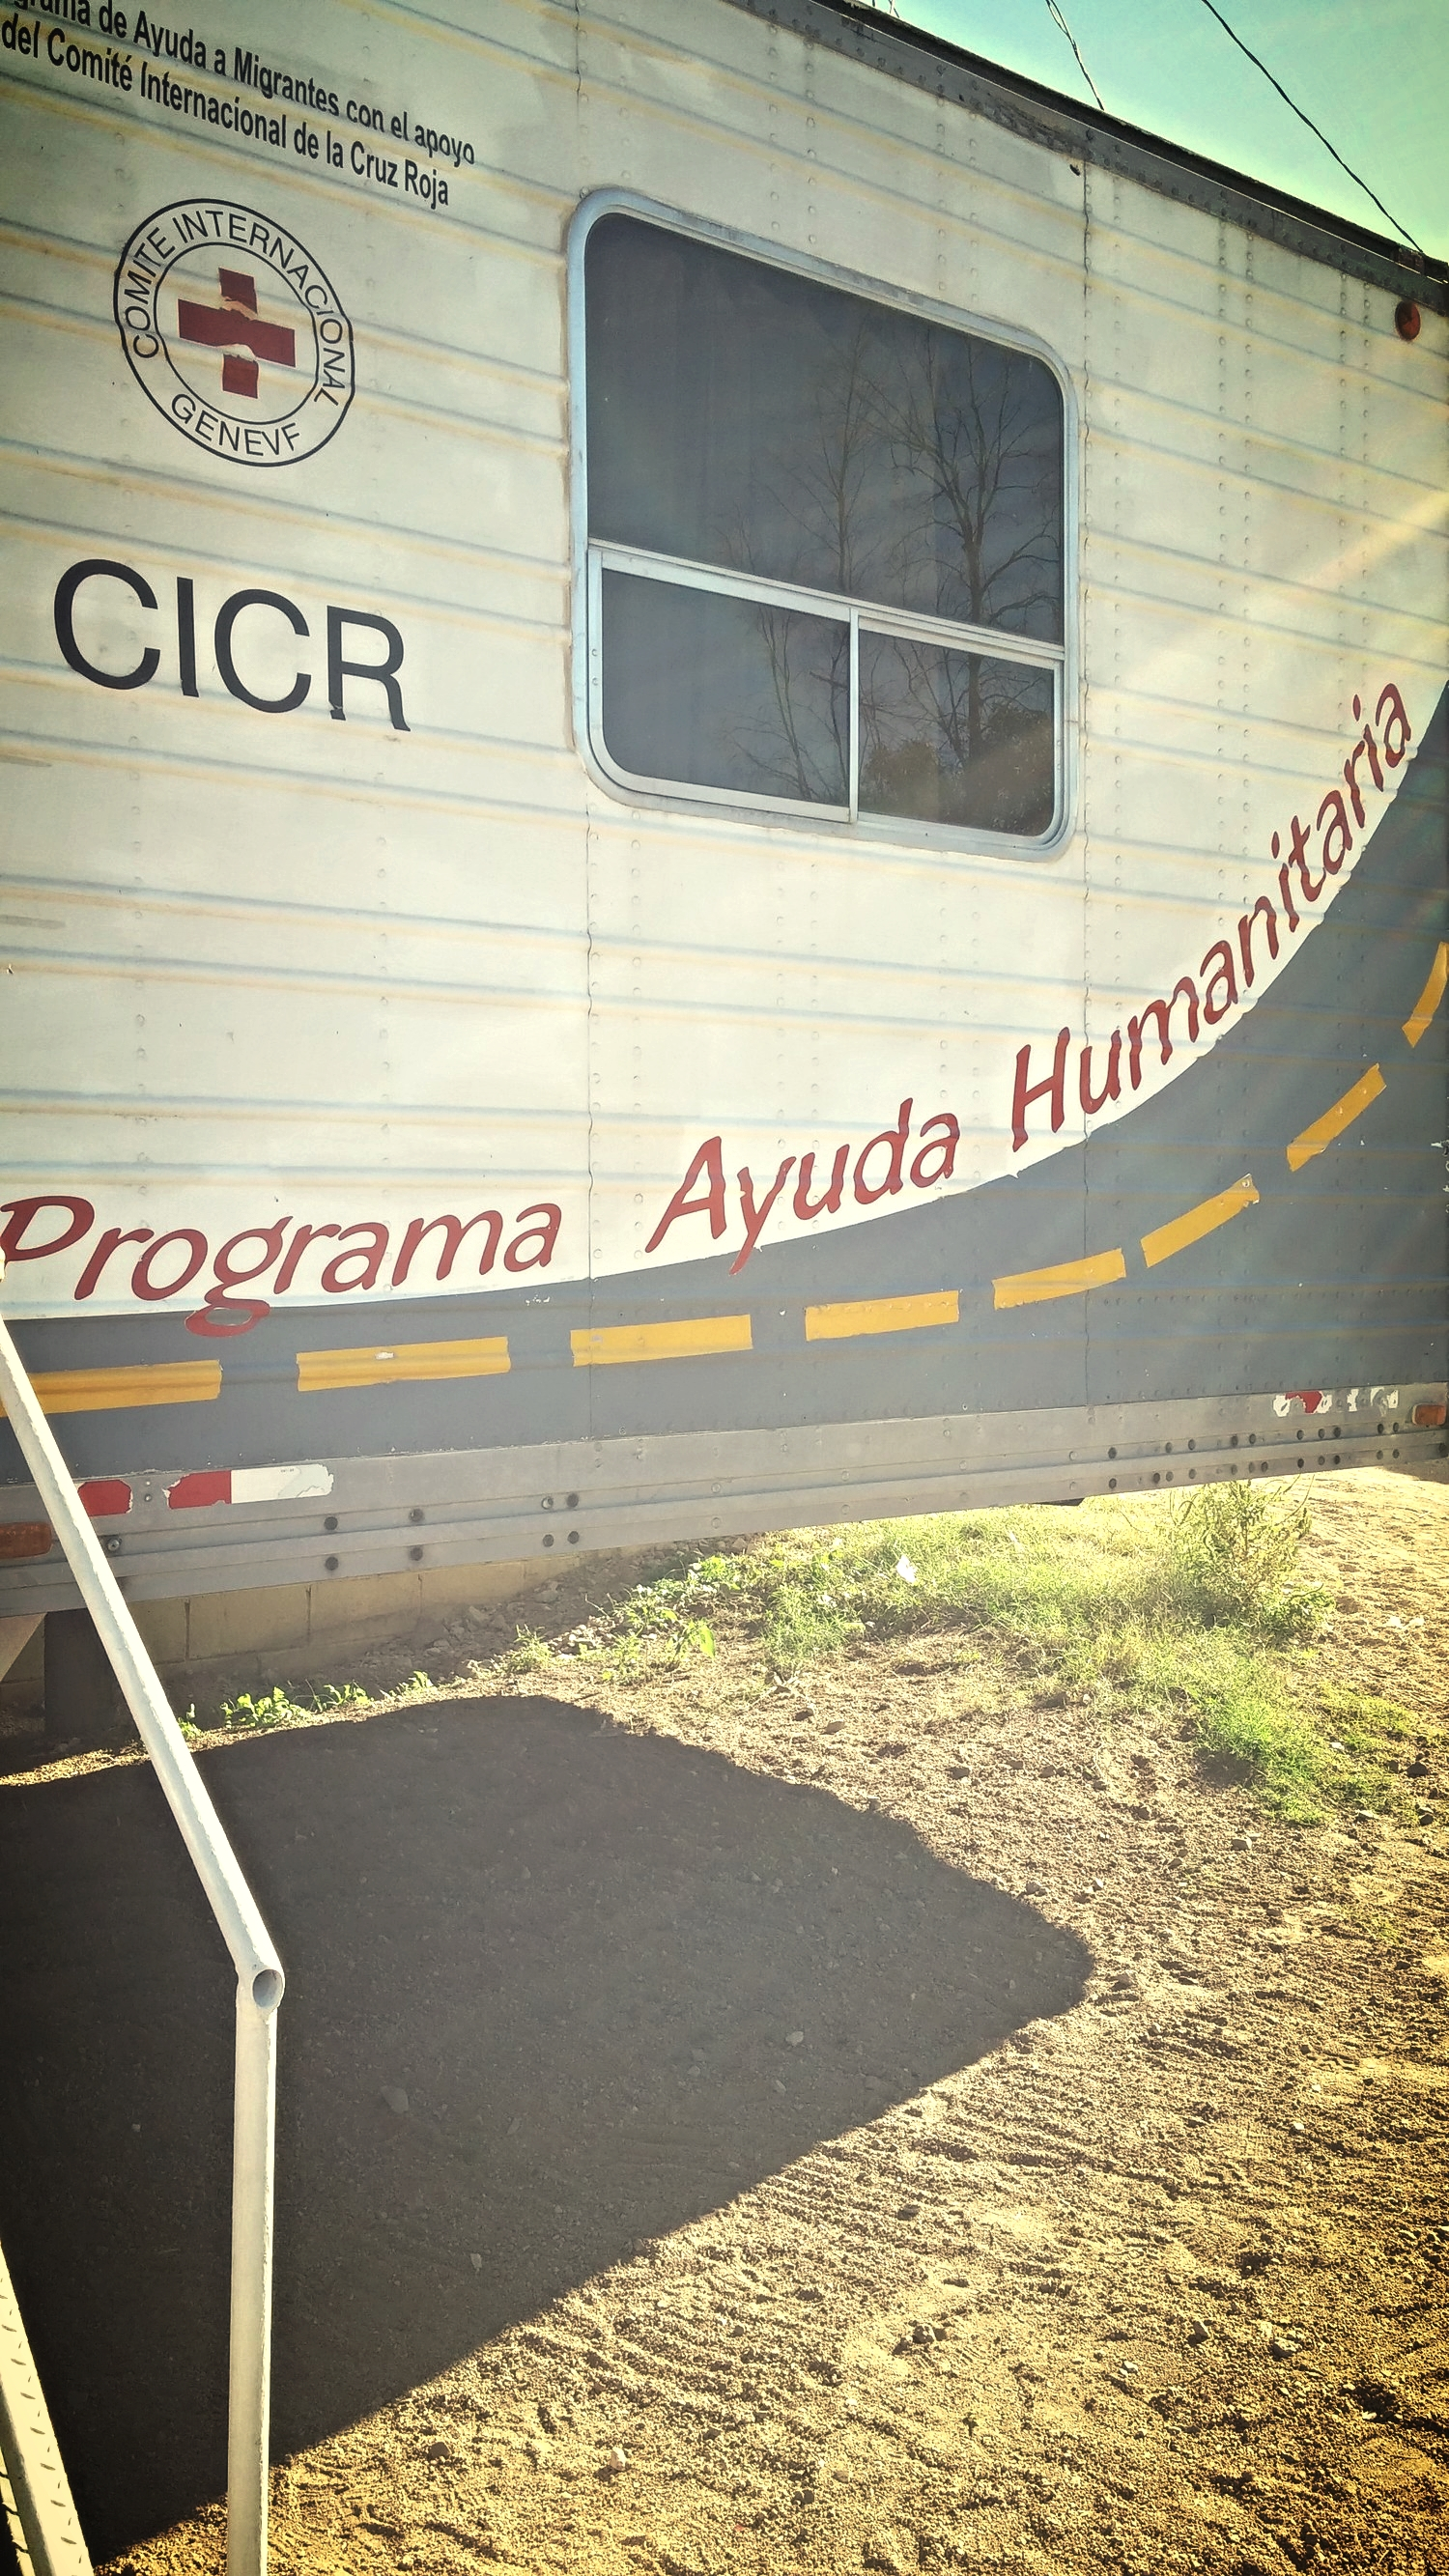 One of the mobile clinics run by the Mexican Red Cross.